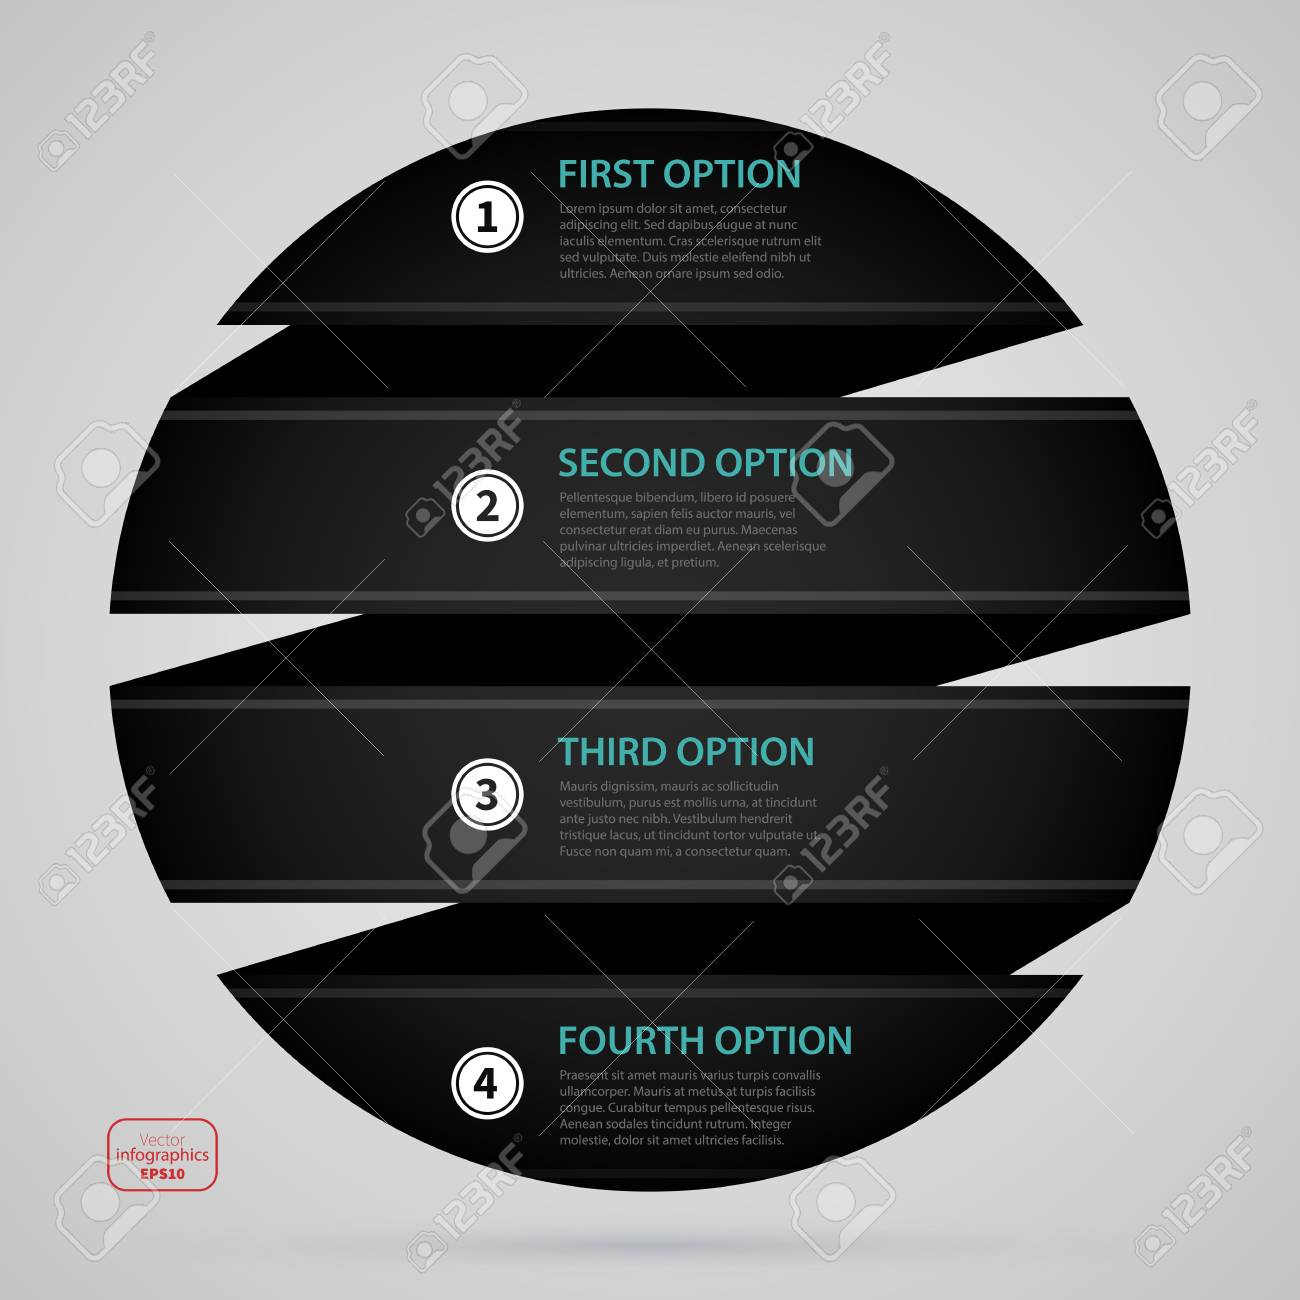 Modern Web Design Sphere Template With Four Options Made Of Black ...